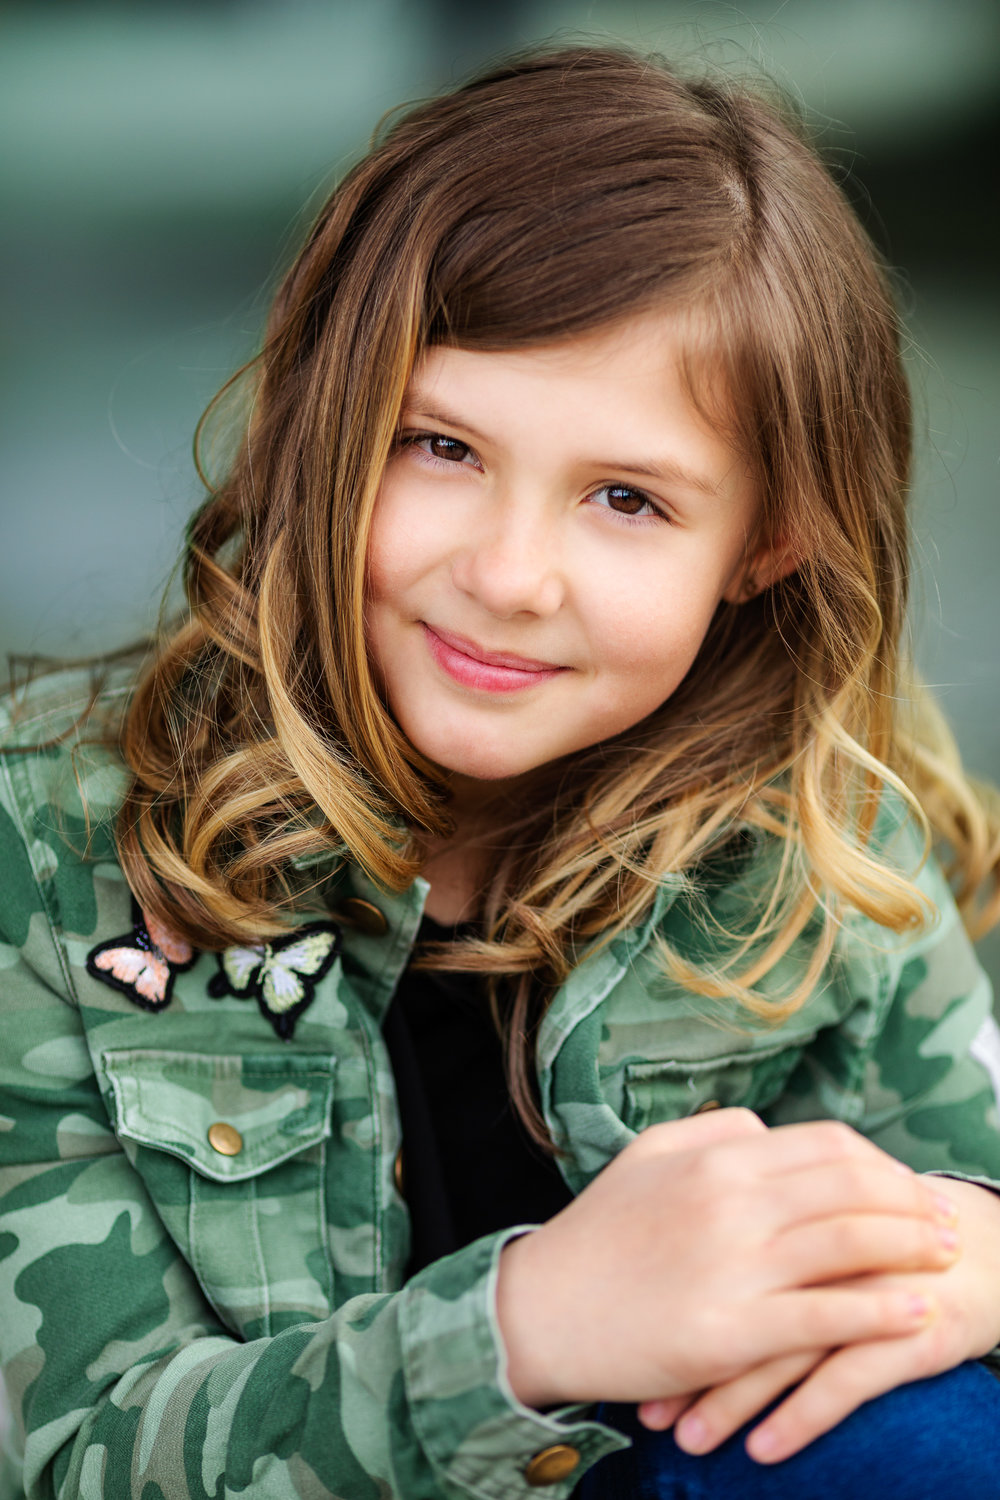 ariellanoellephotography-seattle-area-children-headshots-child-portraiture-actor-model-bellevue-kirkland-redmond-1-4.jpg